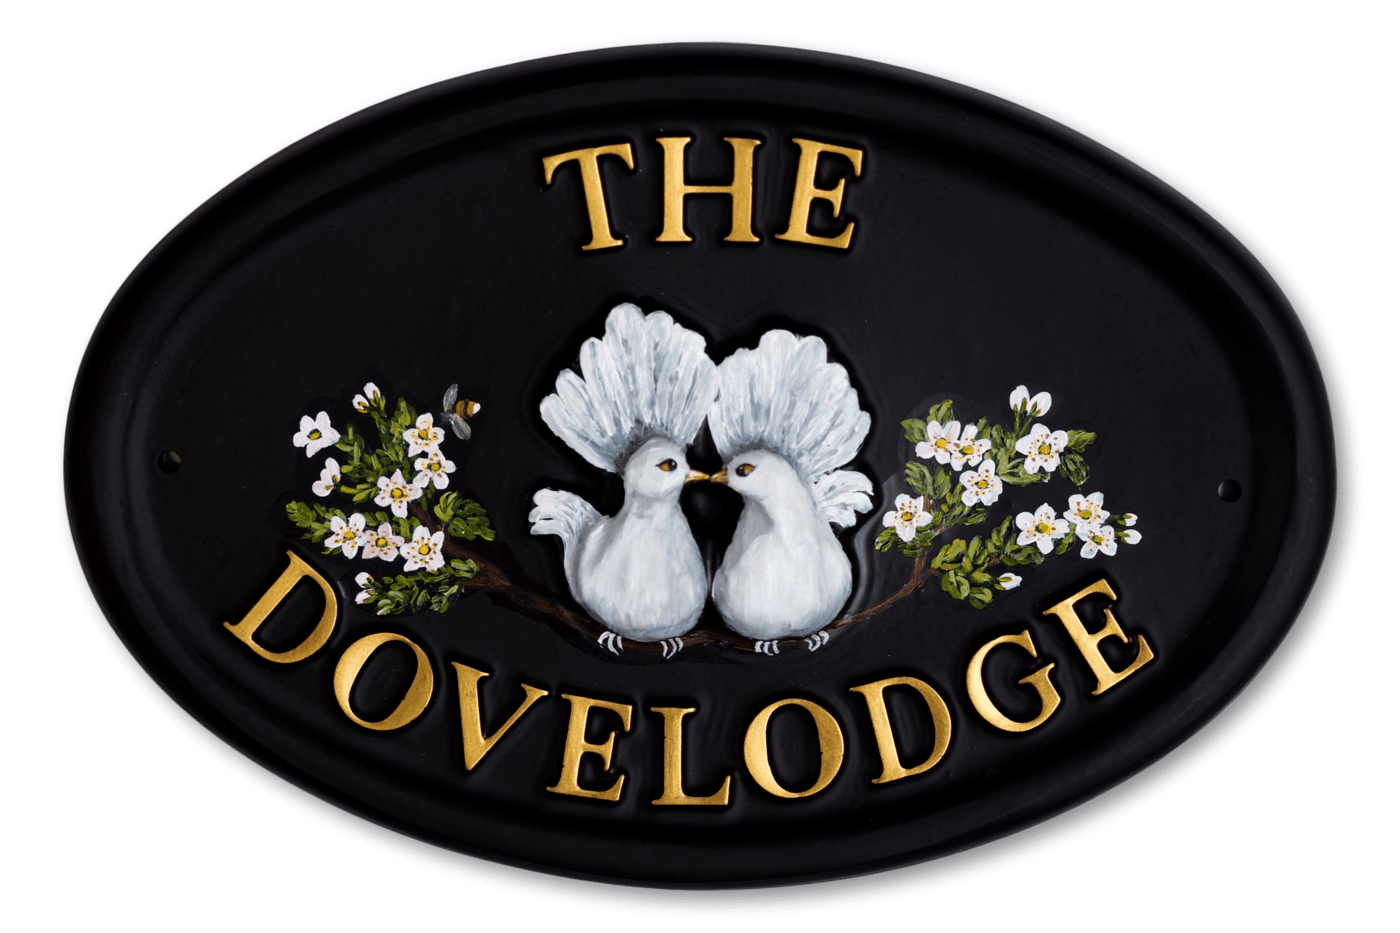 Doves house sign